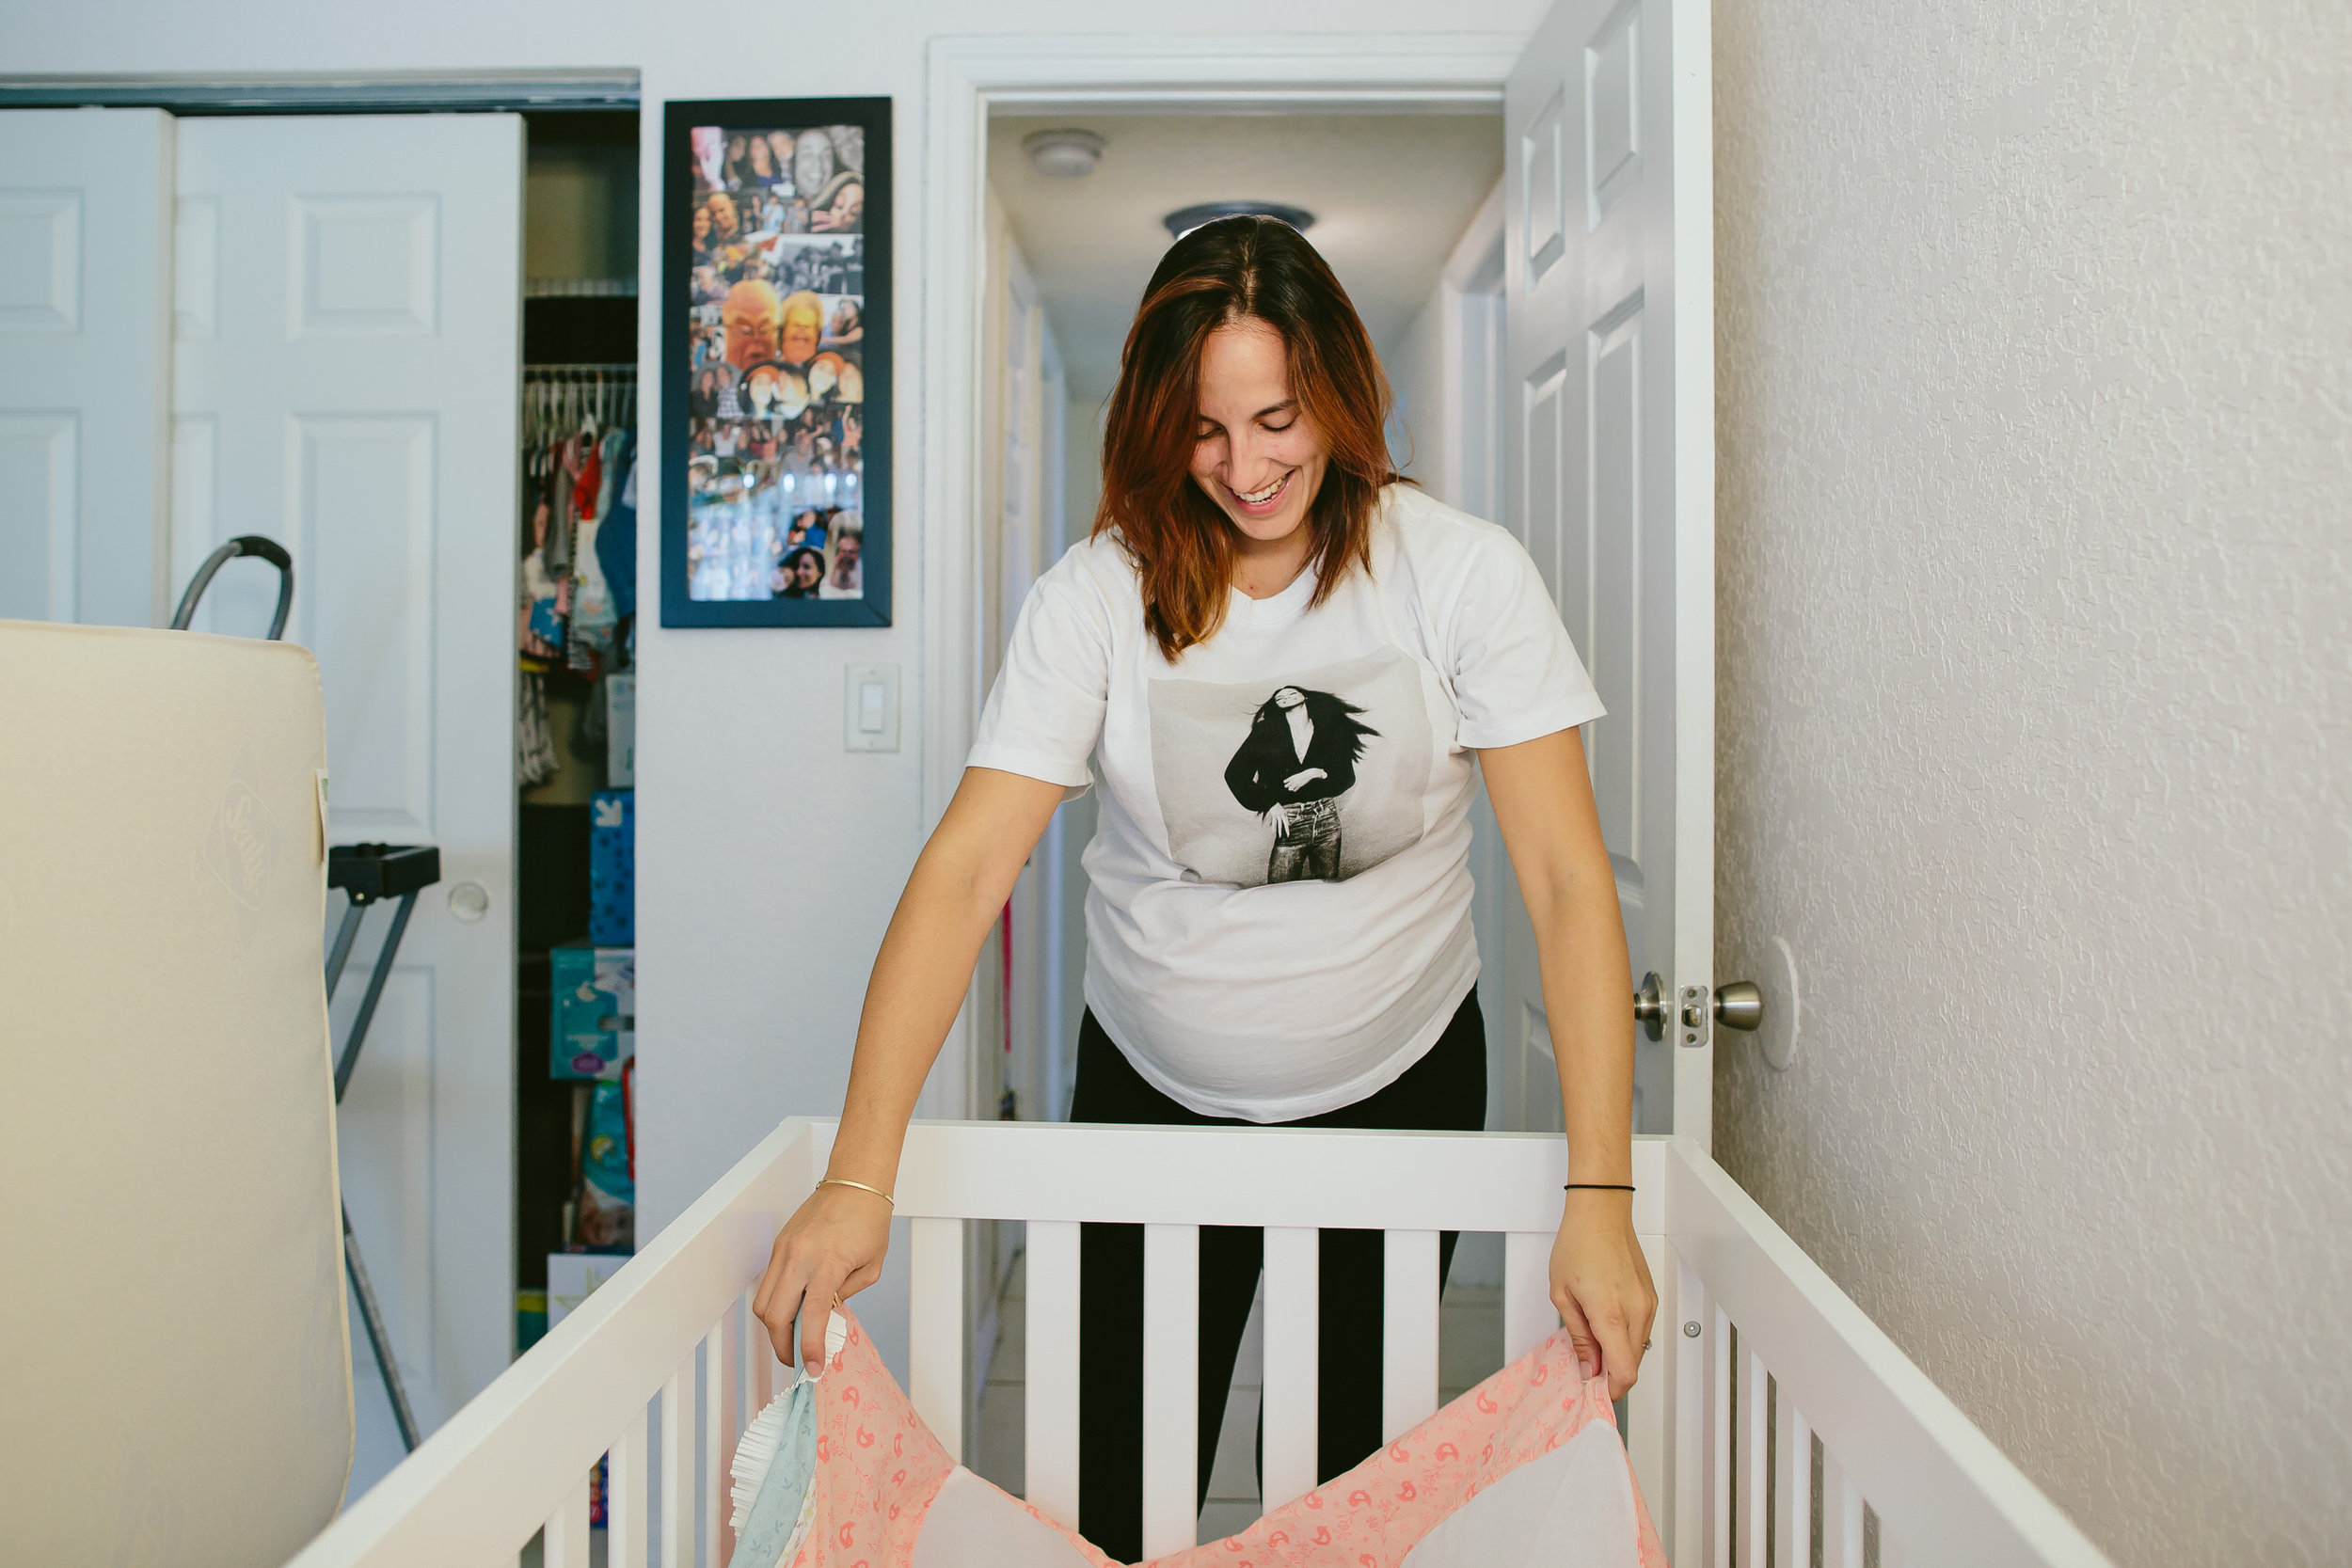 documentary_pregnancy_session_miami_florida_steph_lynn_photo-36.jpg